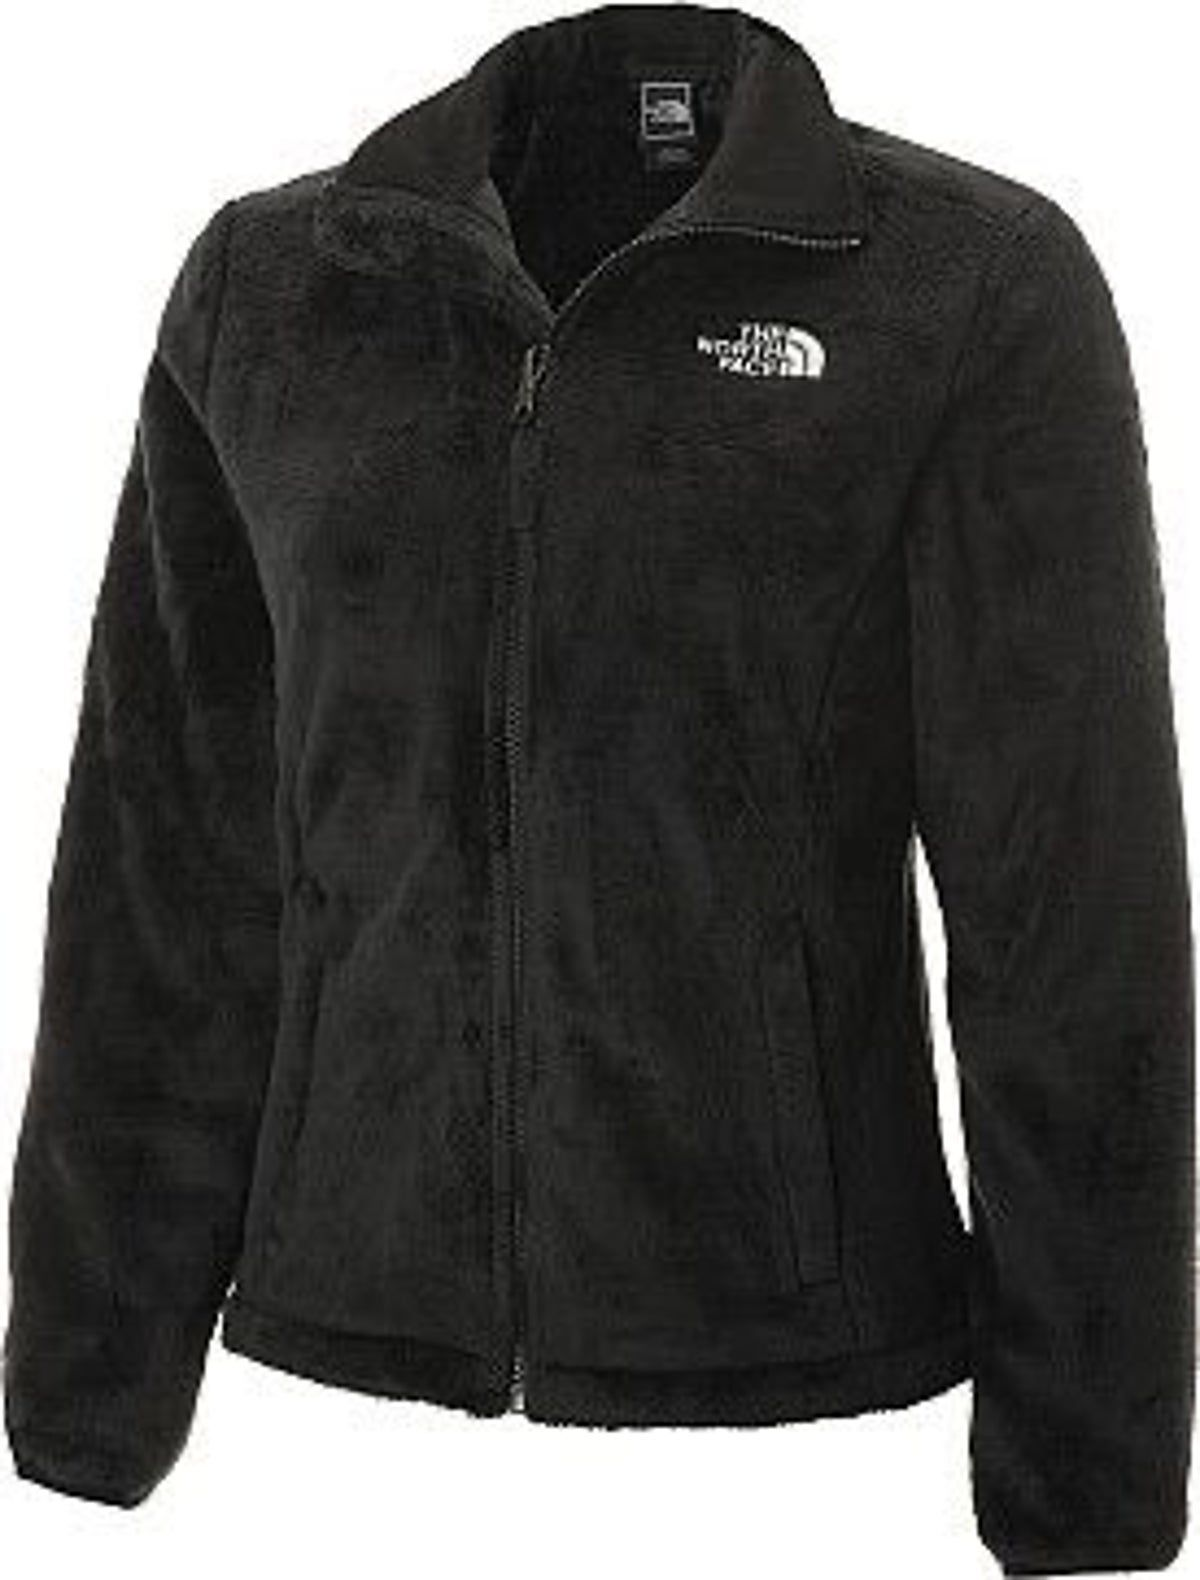 The North Face Womens Furry Jacket On Mercari Black North Face Jacket North Face Jacket Womens North Face Jacket [ 1580 x 1200 Pixel ]